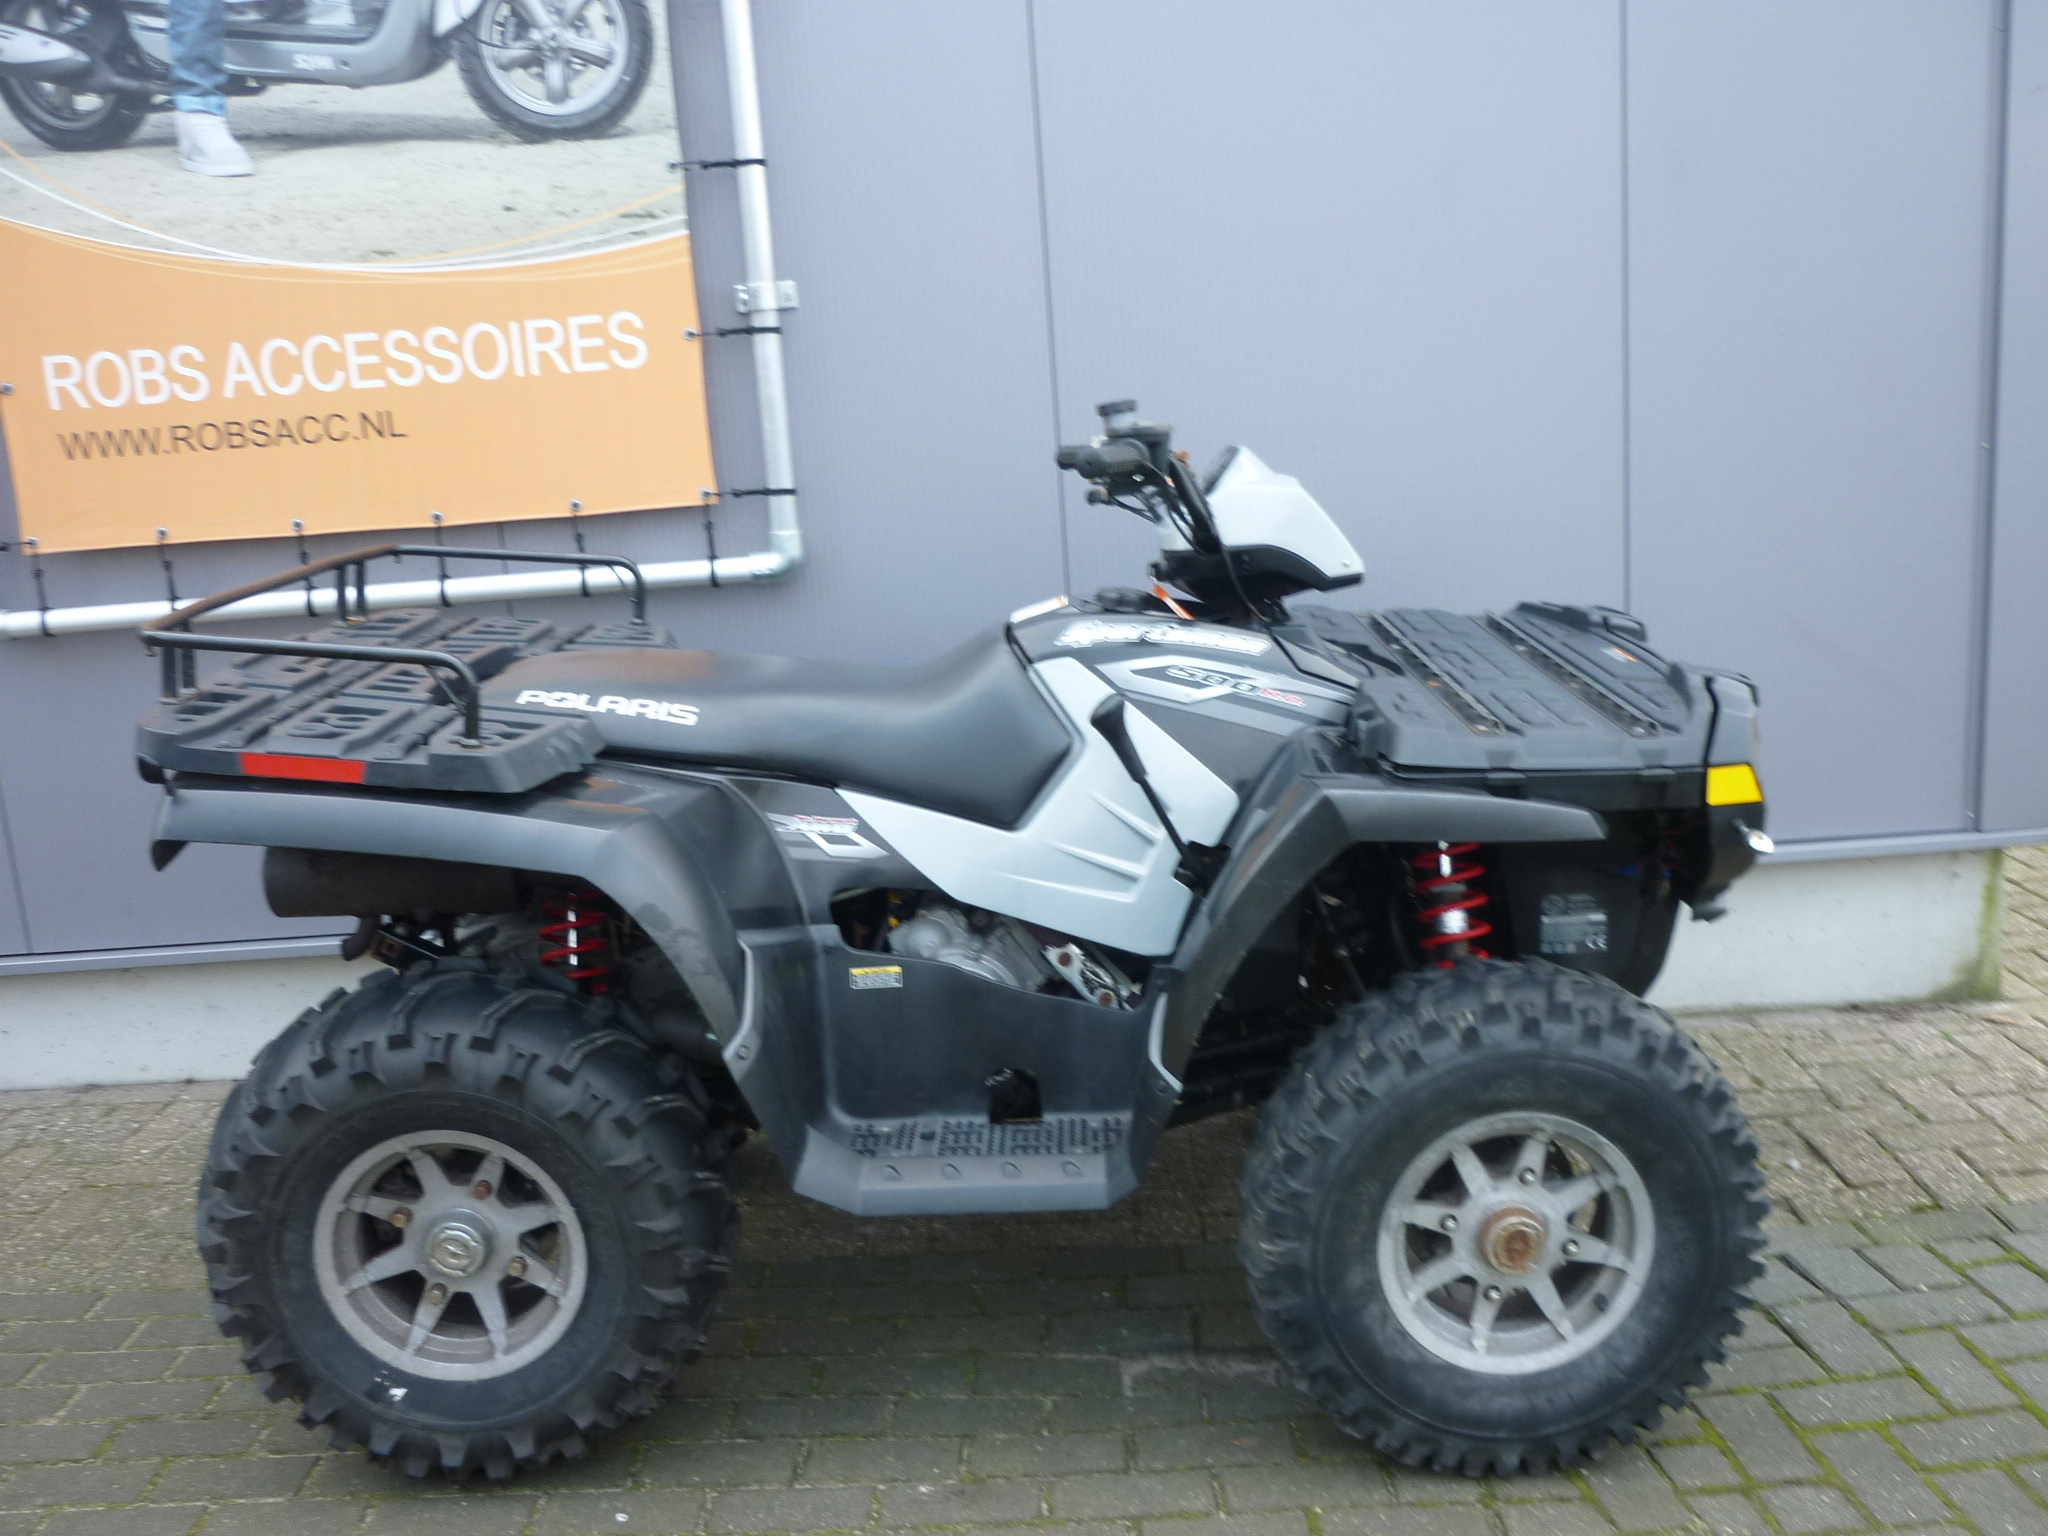 Polaris - Sportsman 500 HO - €2990.00